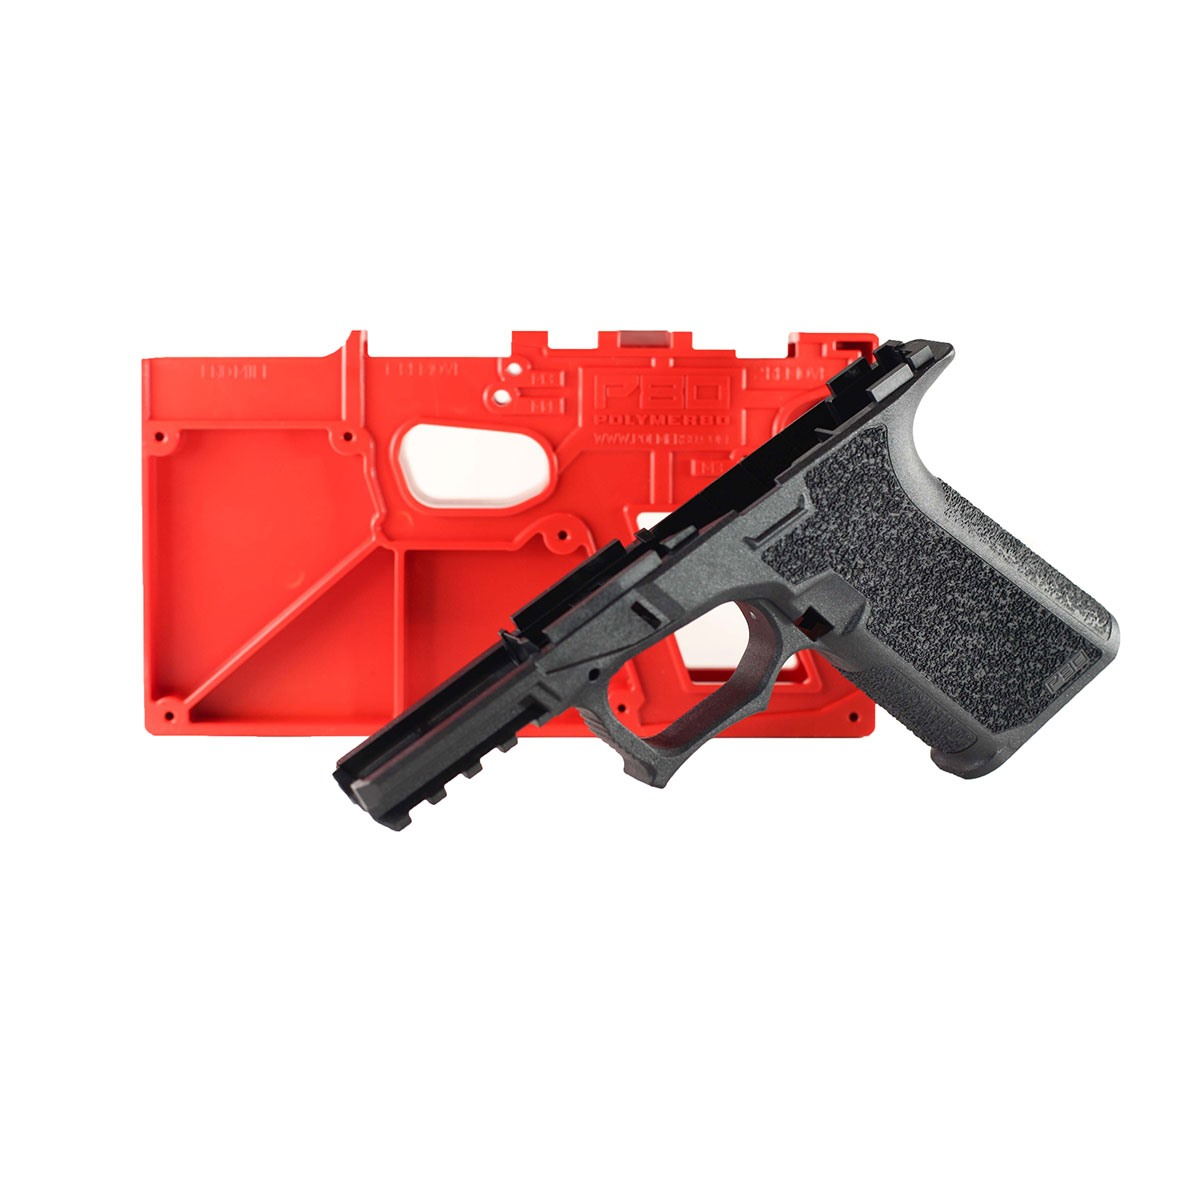 POLYMER80 PF940Cv1 80% FRAME TEXTURED FOR GLOCK 19/23/32 | Brownells